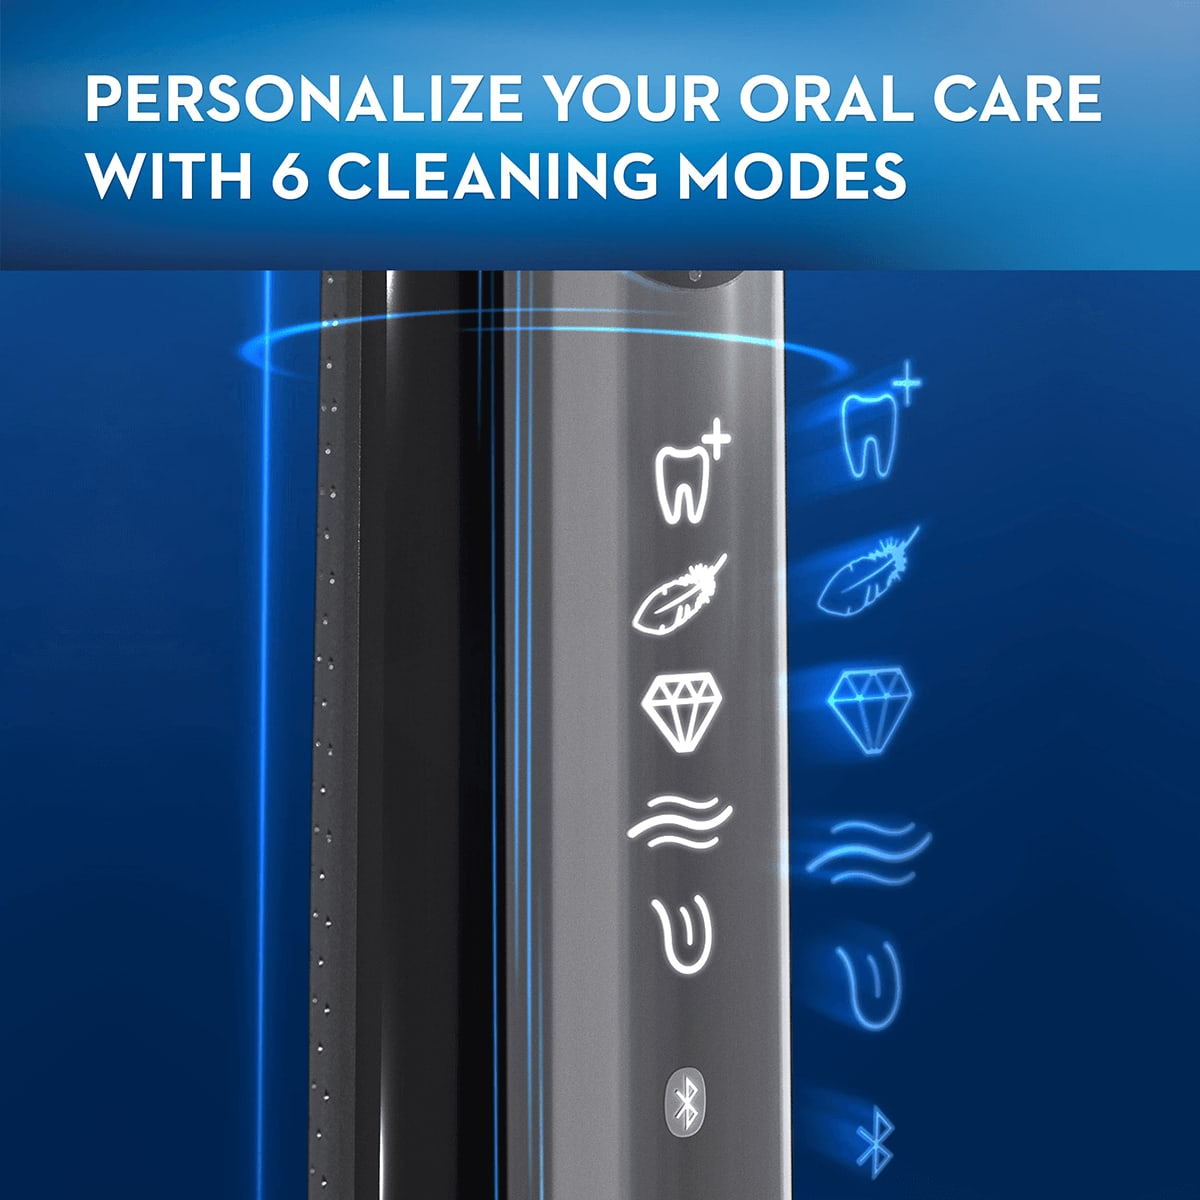 6 cleaning modes